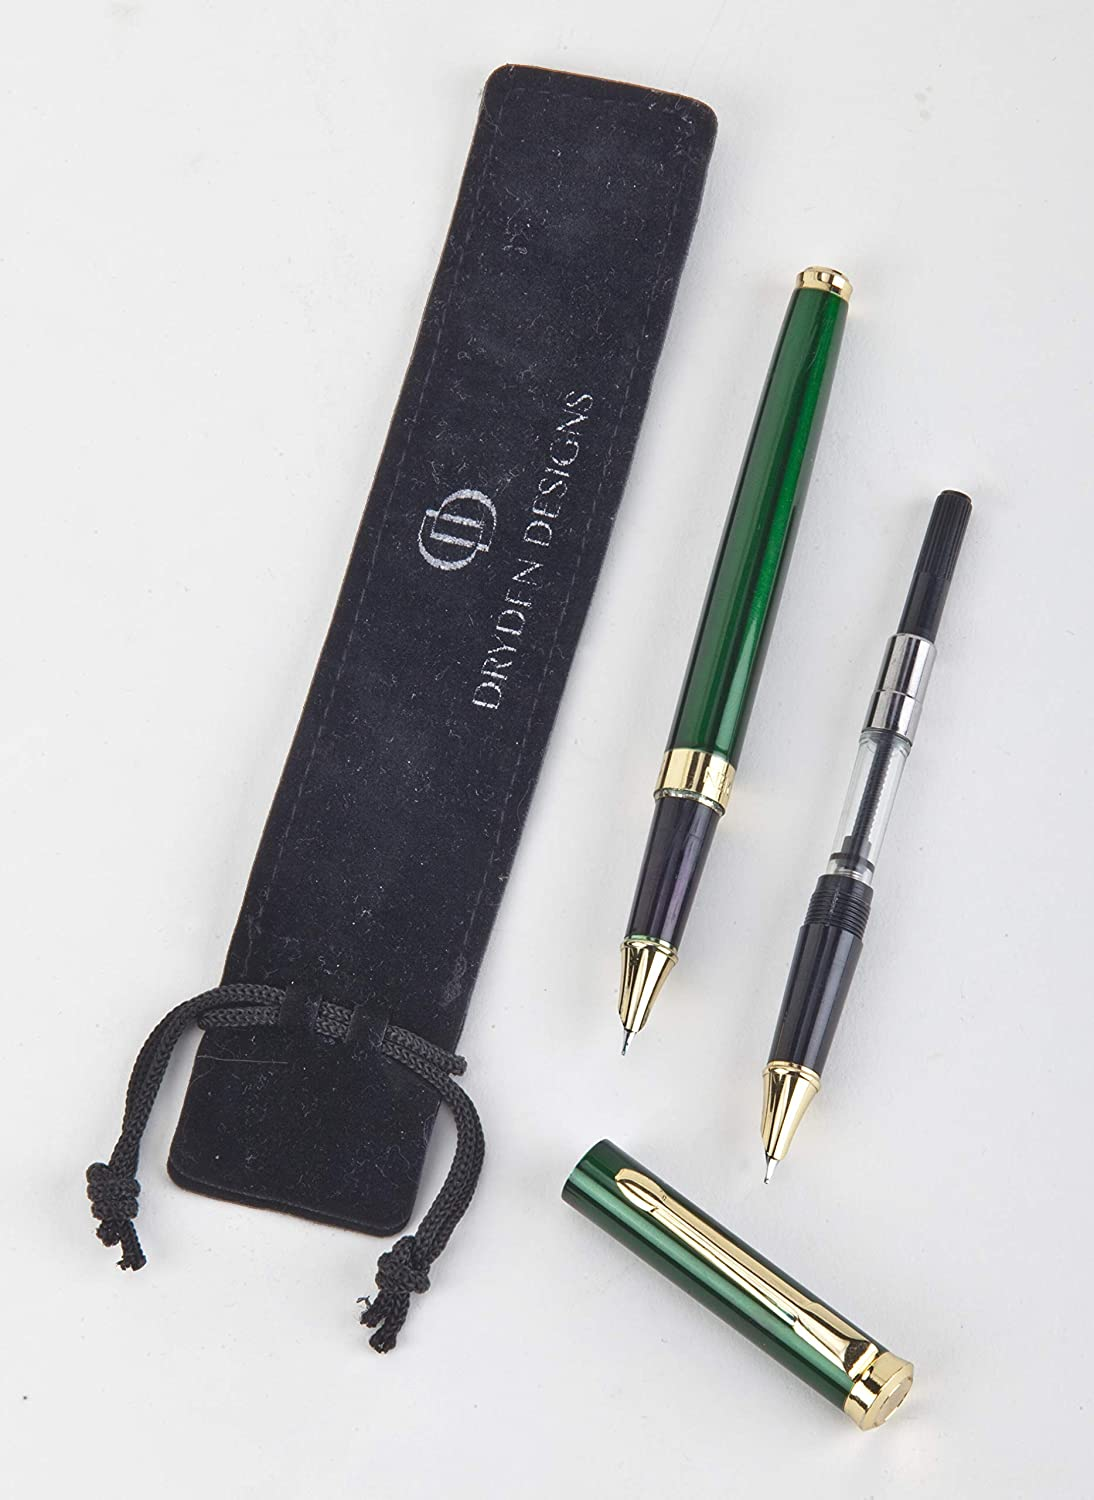 Dryden Designs Fine Nib Fountain Pen - Emerald Green - Luxury Fountain Pens Collection - Consistent Ink Flow - Included two Ink Converter and two Fine Nibs